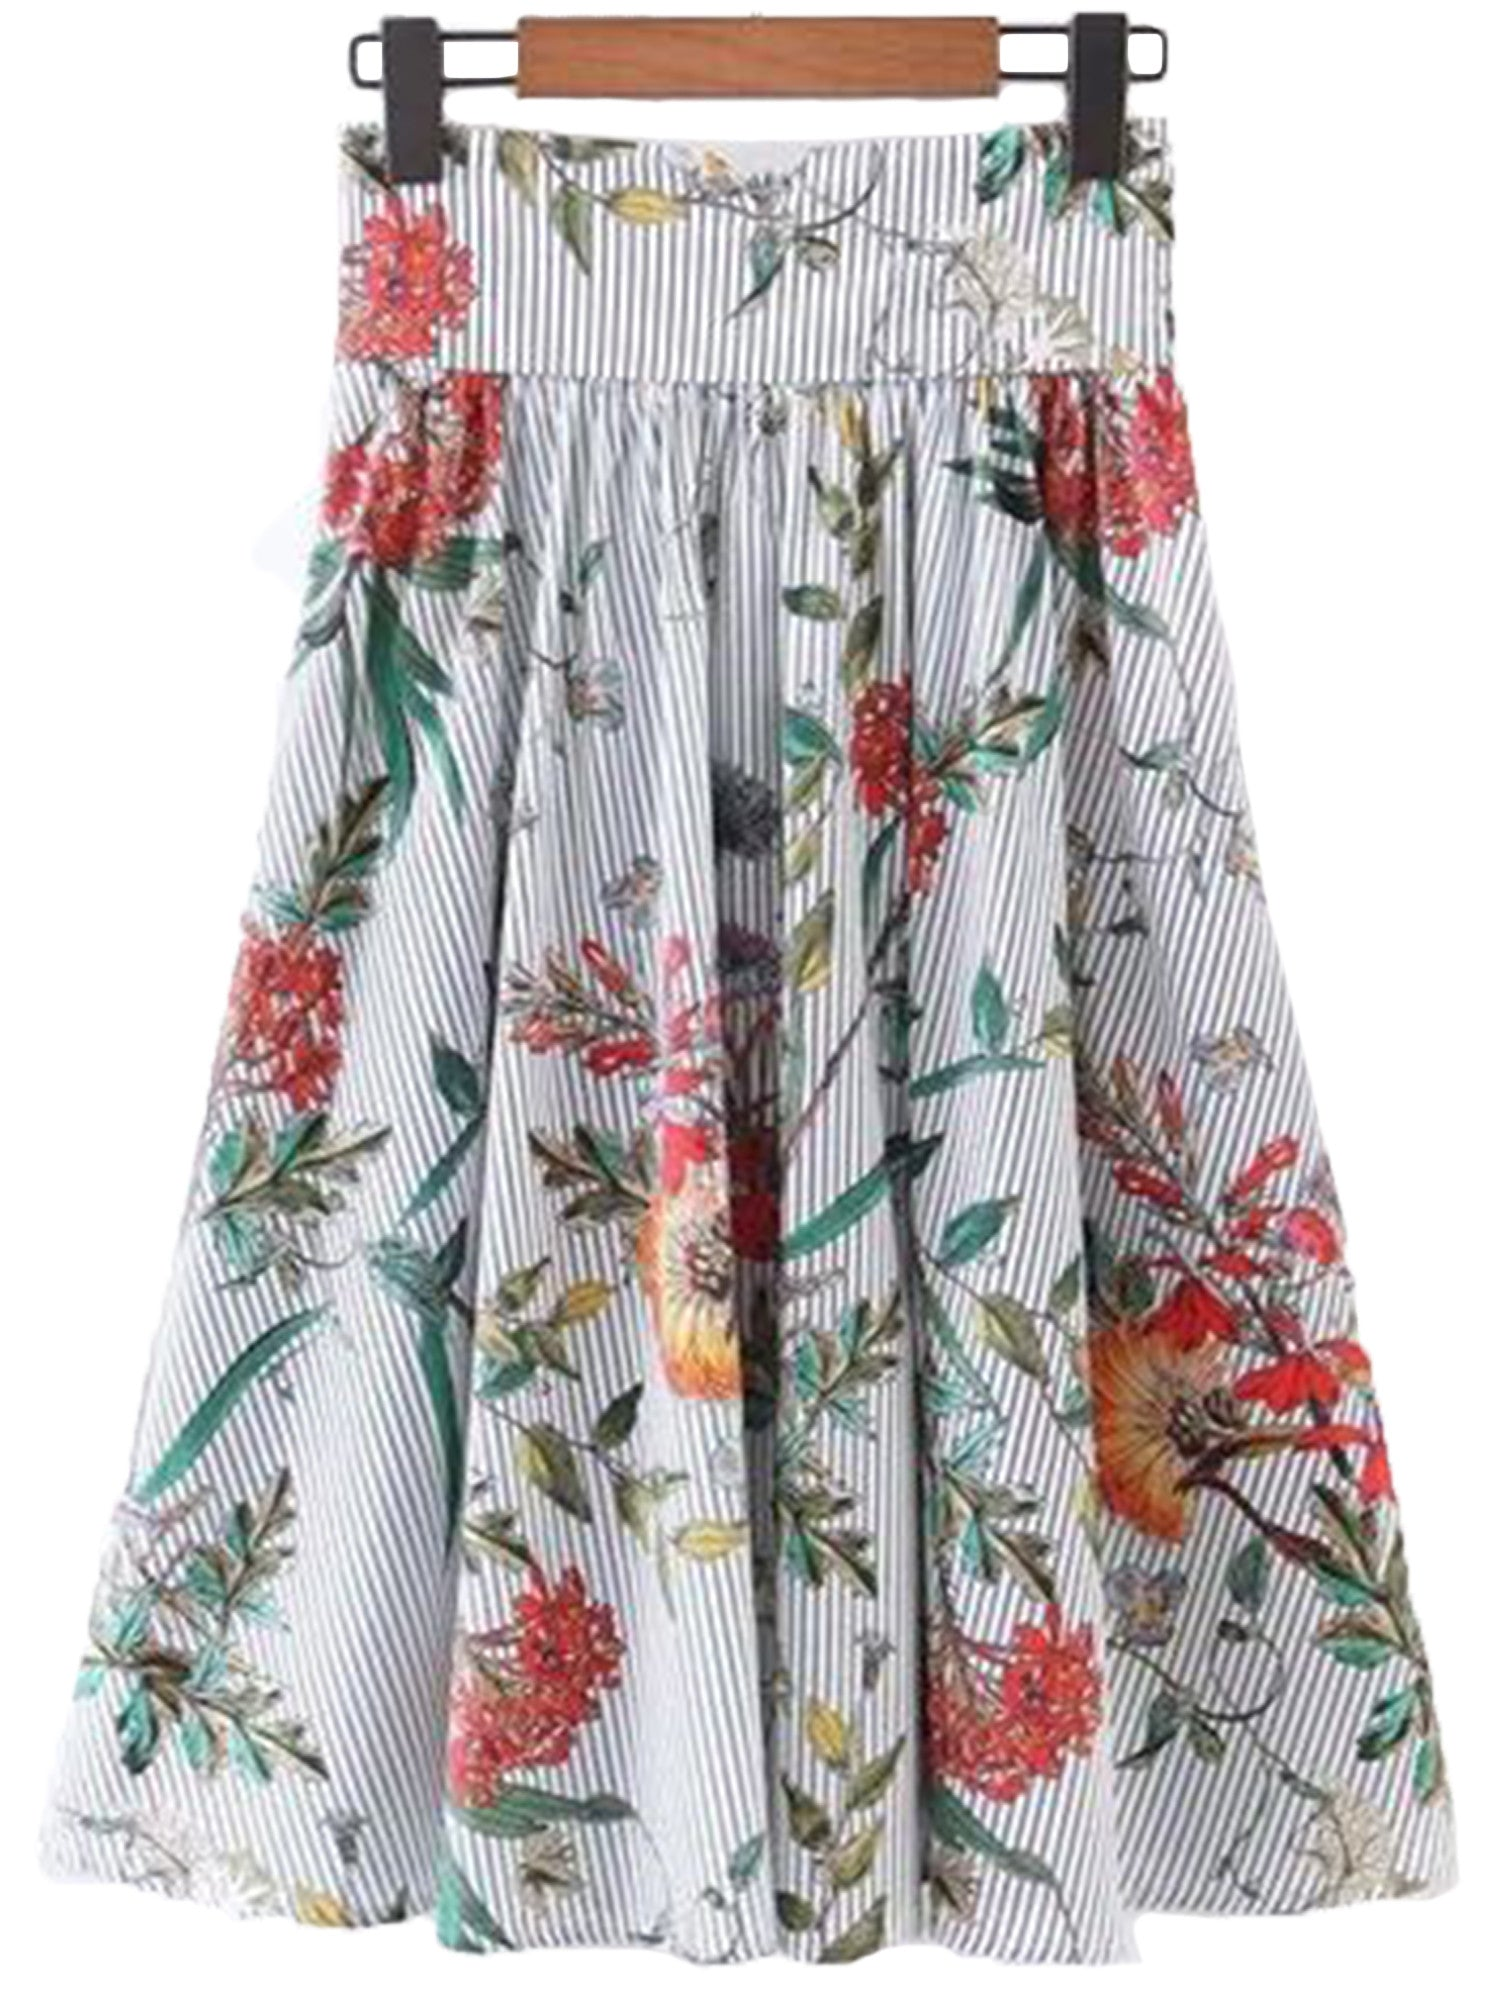 'Liberty' Striped Floral Flare Long Skirt